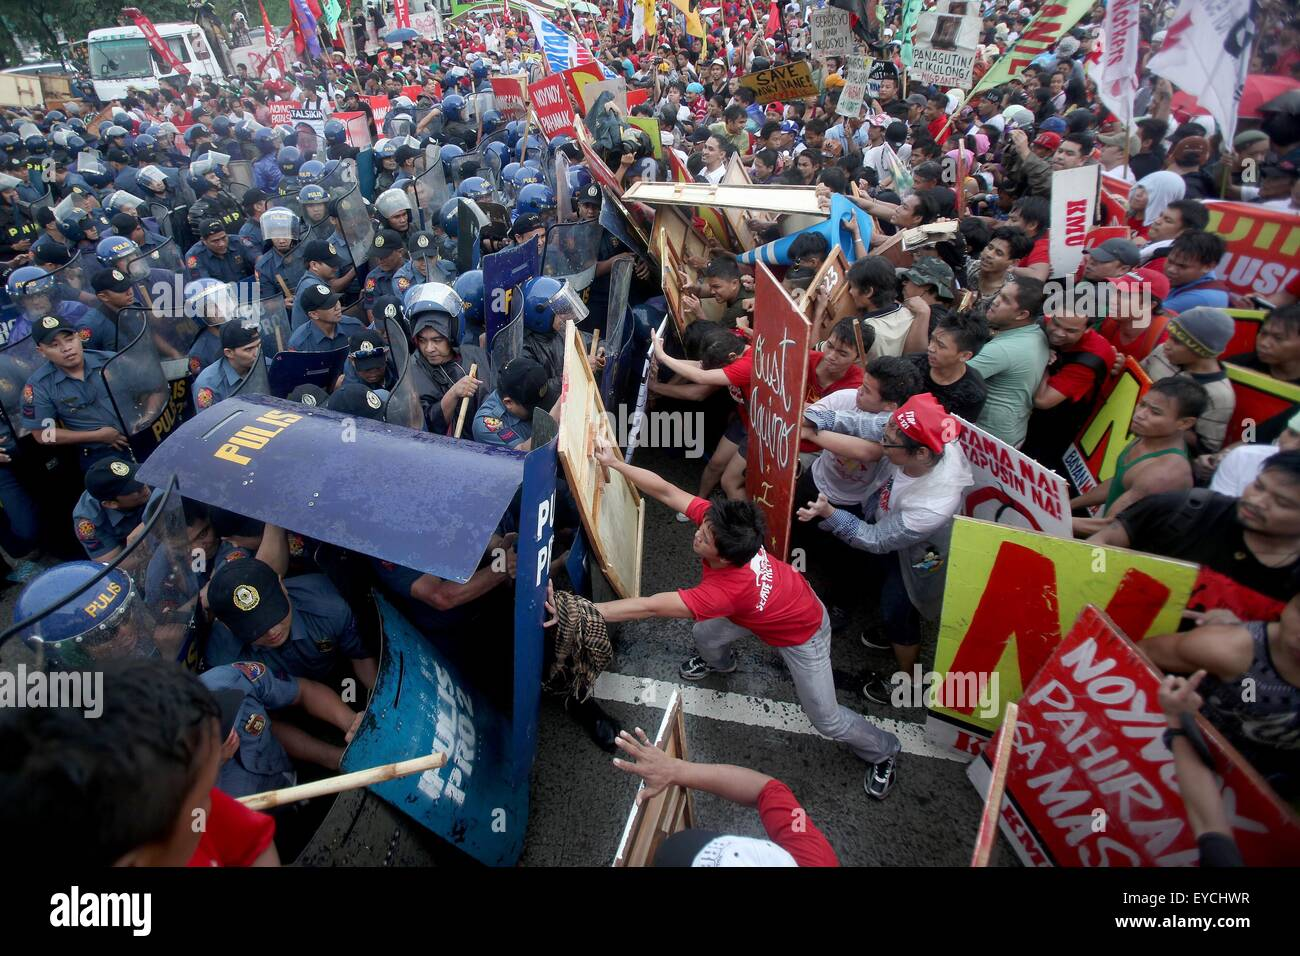 Quezon City, Philippines. 27th July, 2015. Policemen and activists clash during a protest rally in Quezon City, - Stock Image